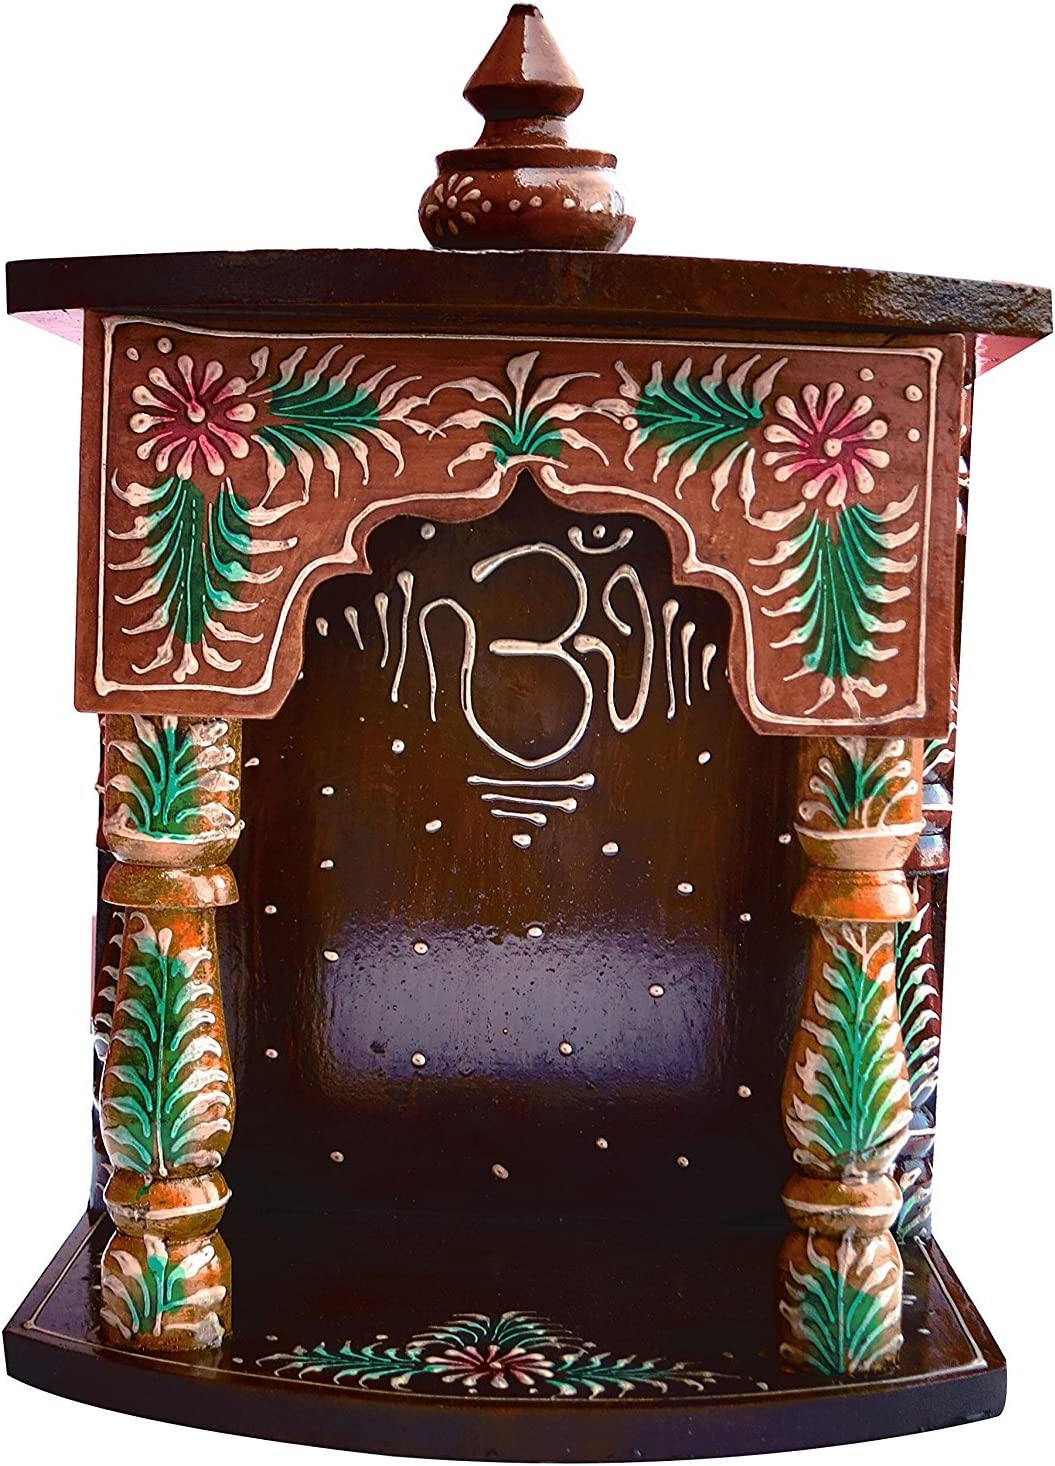 Hindu Religious Wood Temple with om Symbol for Pooja and Religious Purpose, Must for Pooja Room at Home and Office, Religious Perfect for Home, Hand Made Wood Handcrafted Temple